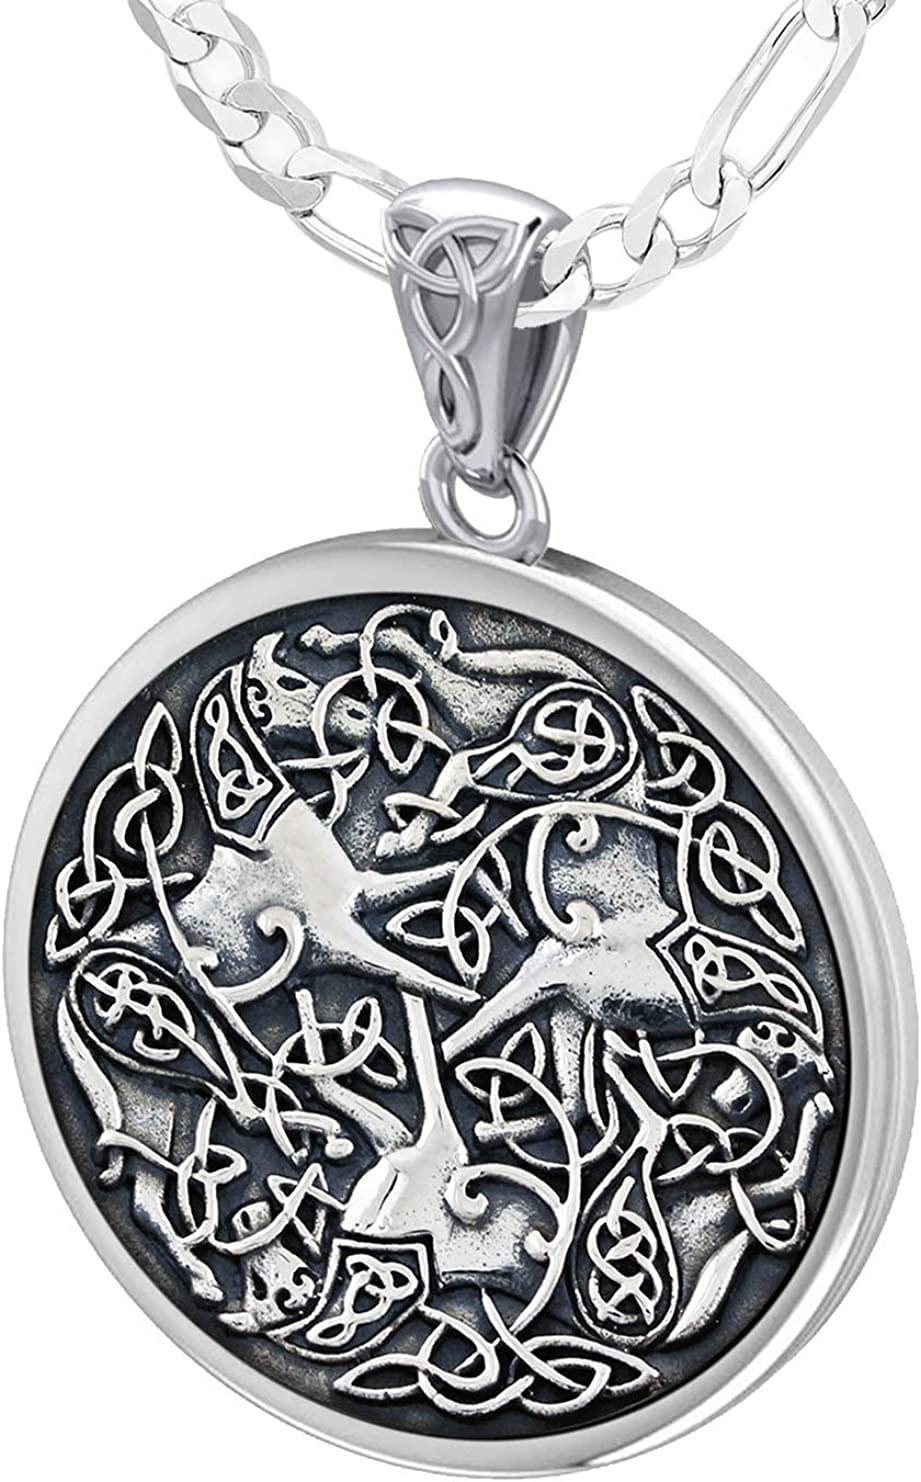 US Jewels Men's 925 High quality new Sterling Silver Excellence Irish Knot Celtic Ho Warrior